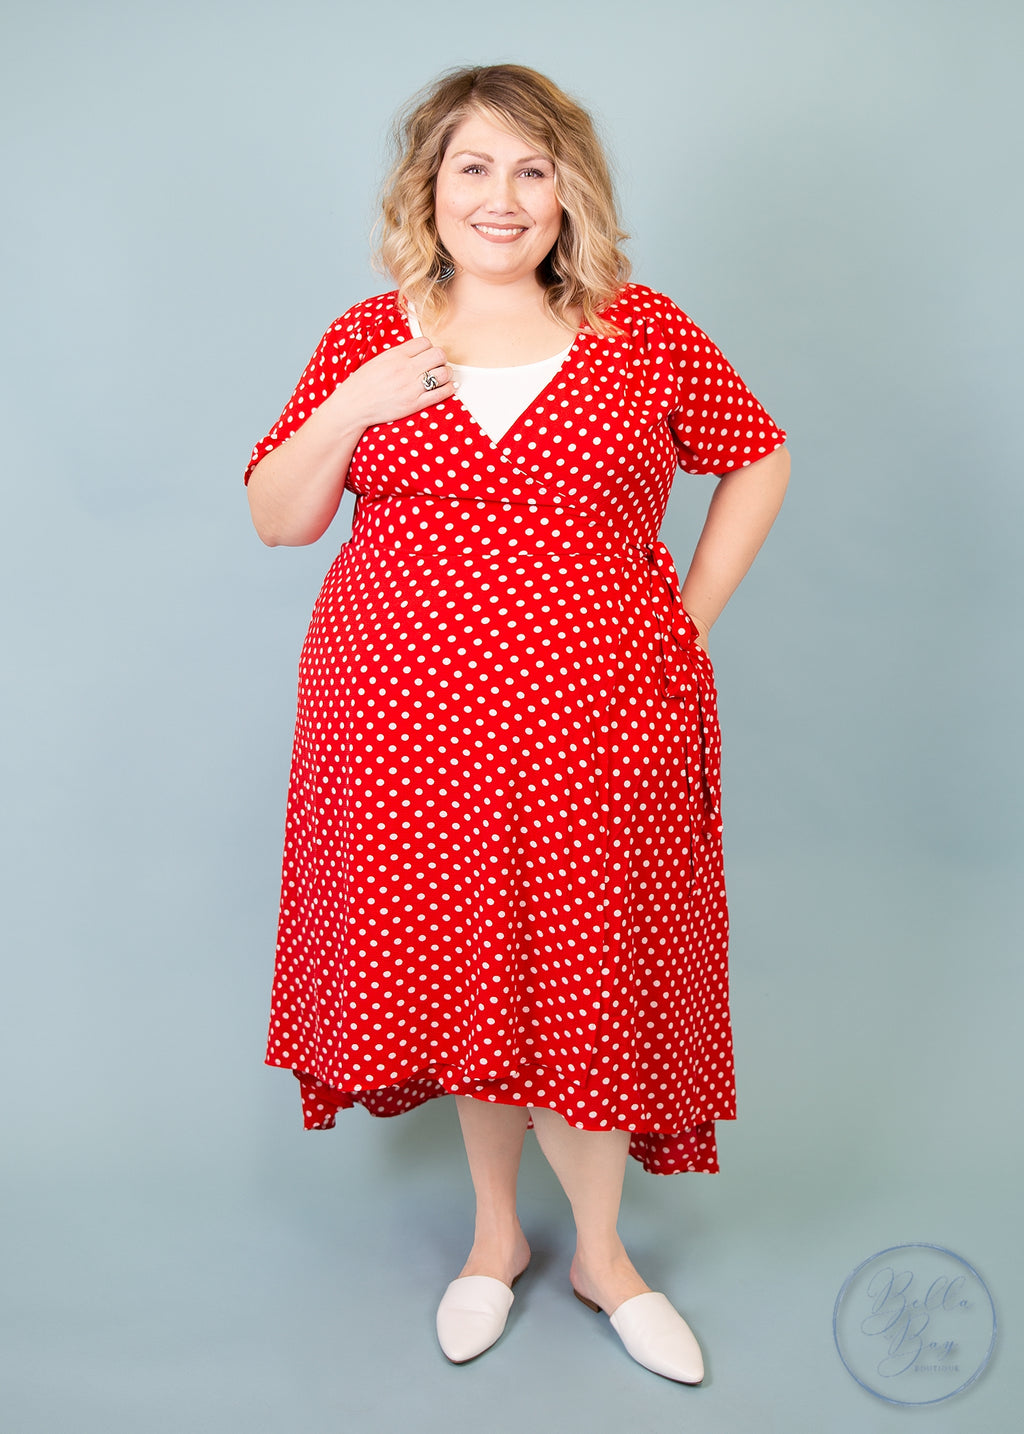 Paisley Raye Primrose Wrap Dress- Red and White Polka Dot (0X) - Paisley Raye with Bella Bay Boutique, shop now at  https://shopbellabay.com/ or locally in Newport Oregon